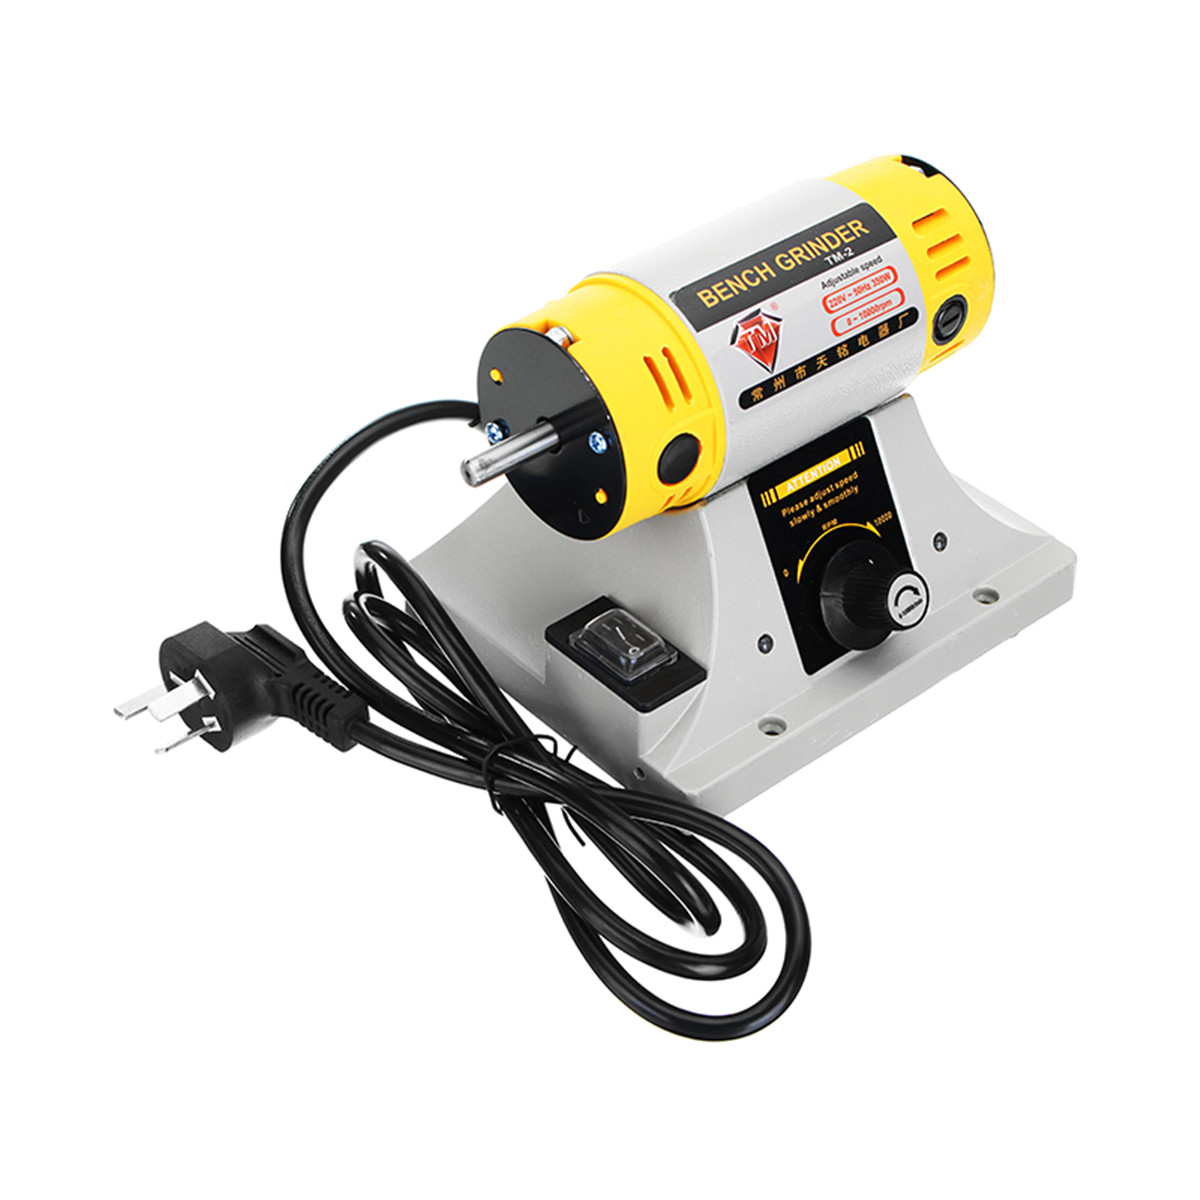 Image 3 - 220V 350W Polishing Machine for Jewelry Dental Bench Lathe Machine Motor Grinder With Accessories-in Polishers from Tools